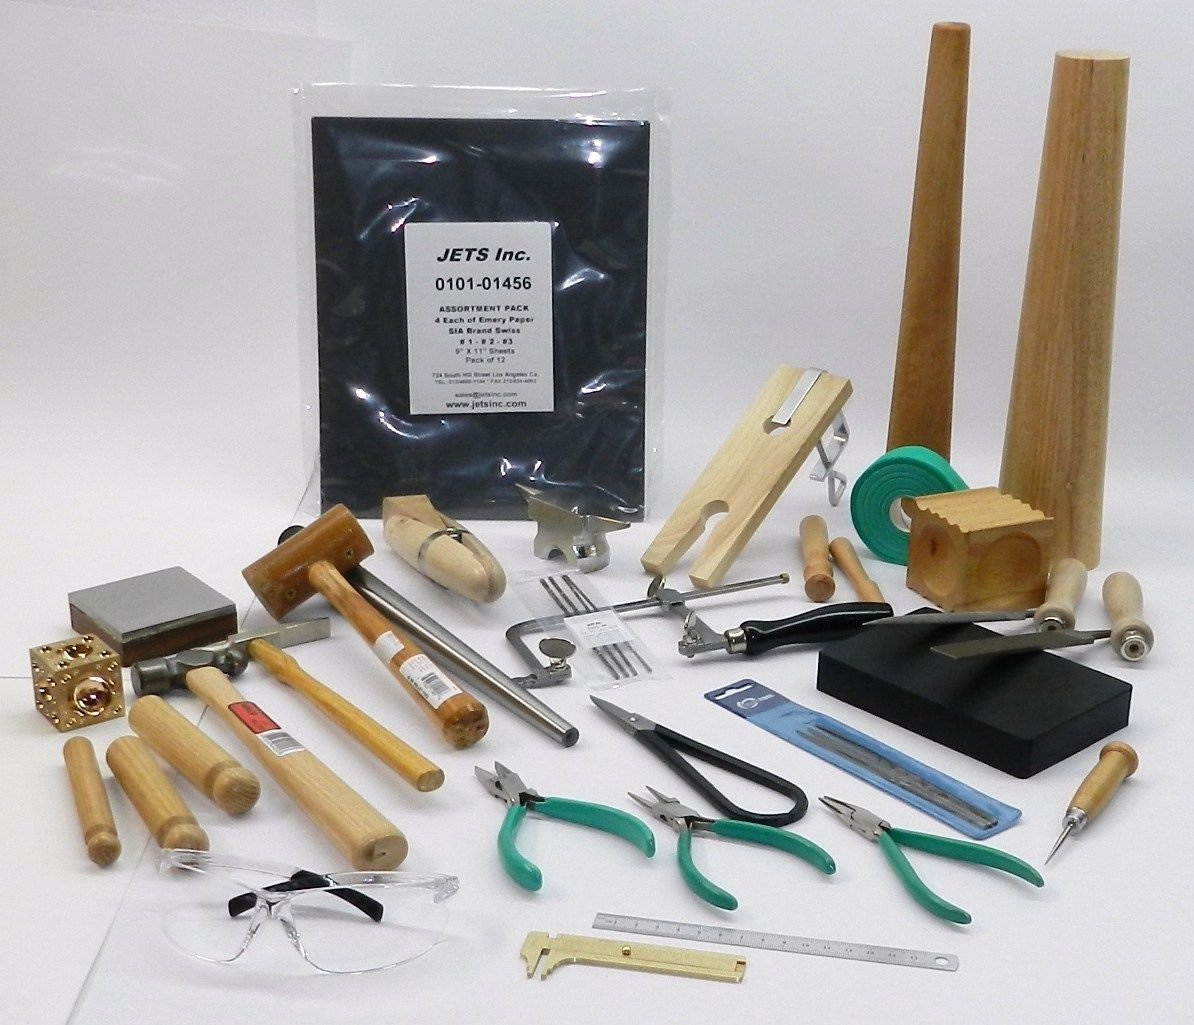 METALSMITH TOOLS KIT BEGINNERS -APPRENTICE METALSMITHING JEWELRY MAKING TOOL SET (LZ 13.10 LARGE BOX) by NOVEL (Image #2)